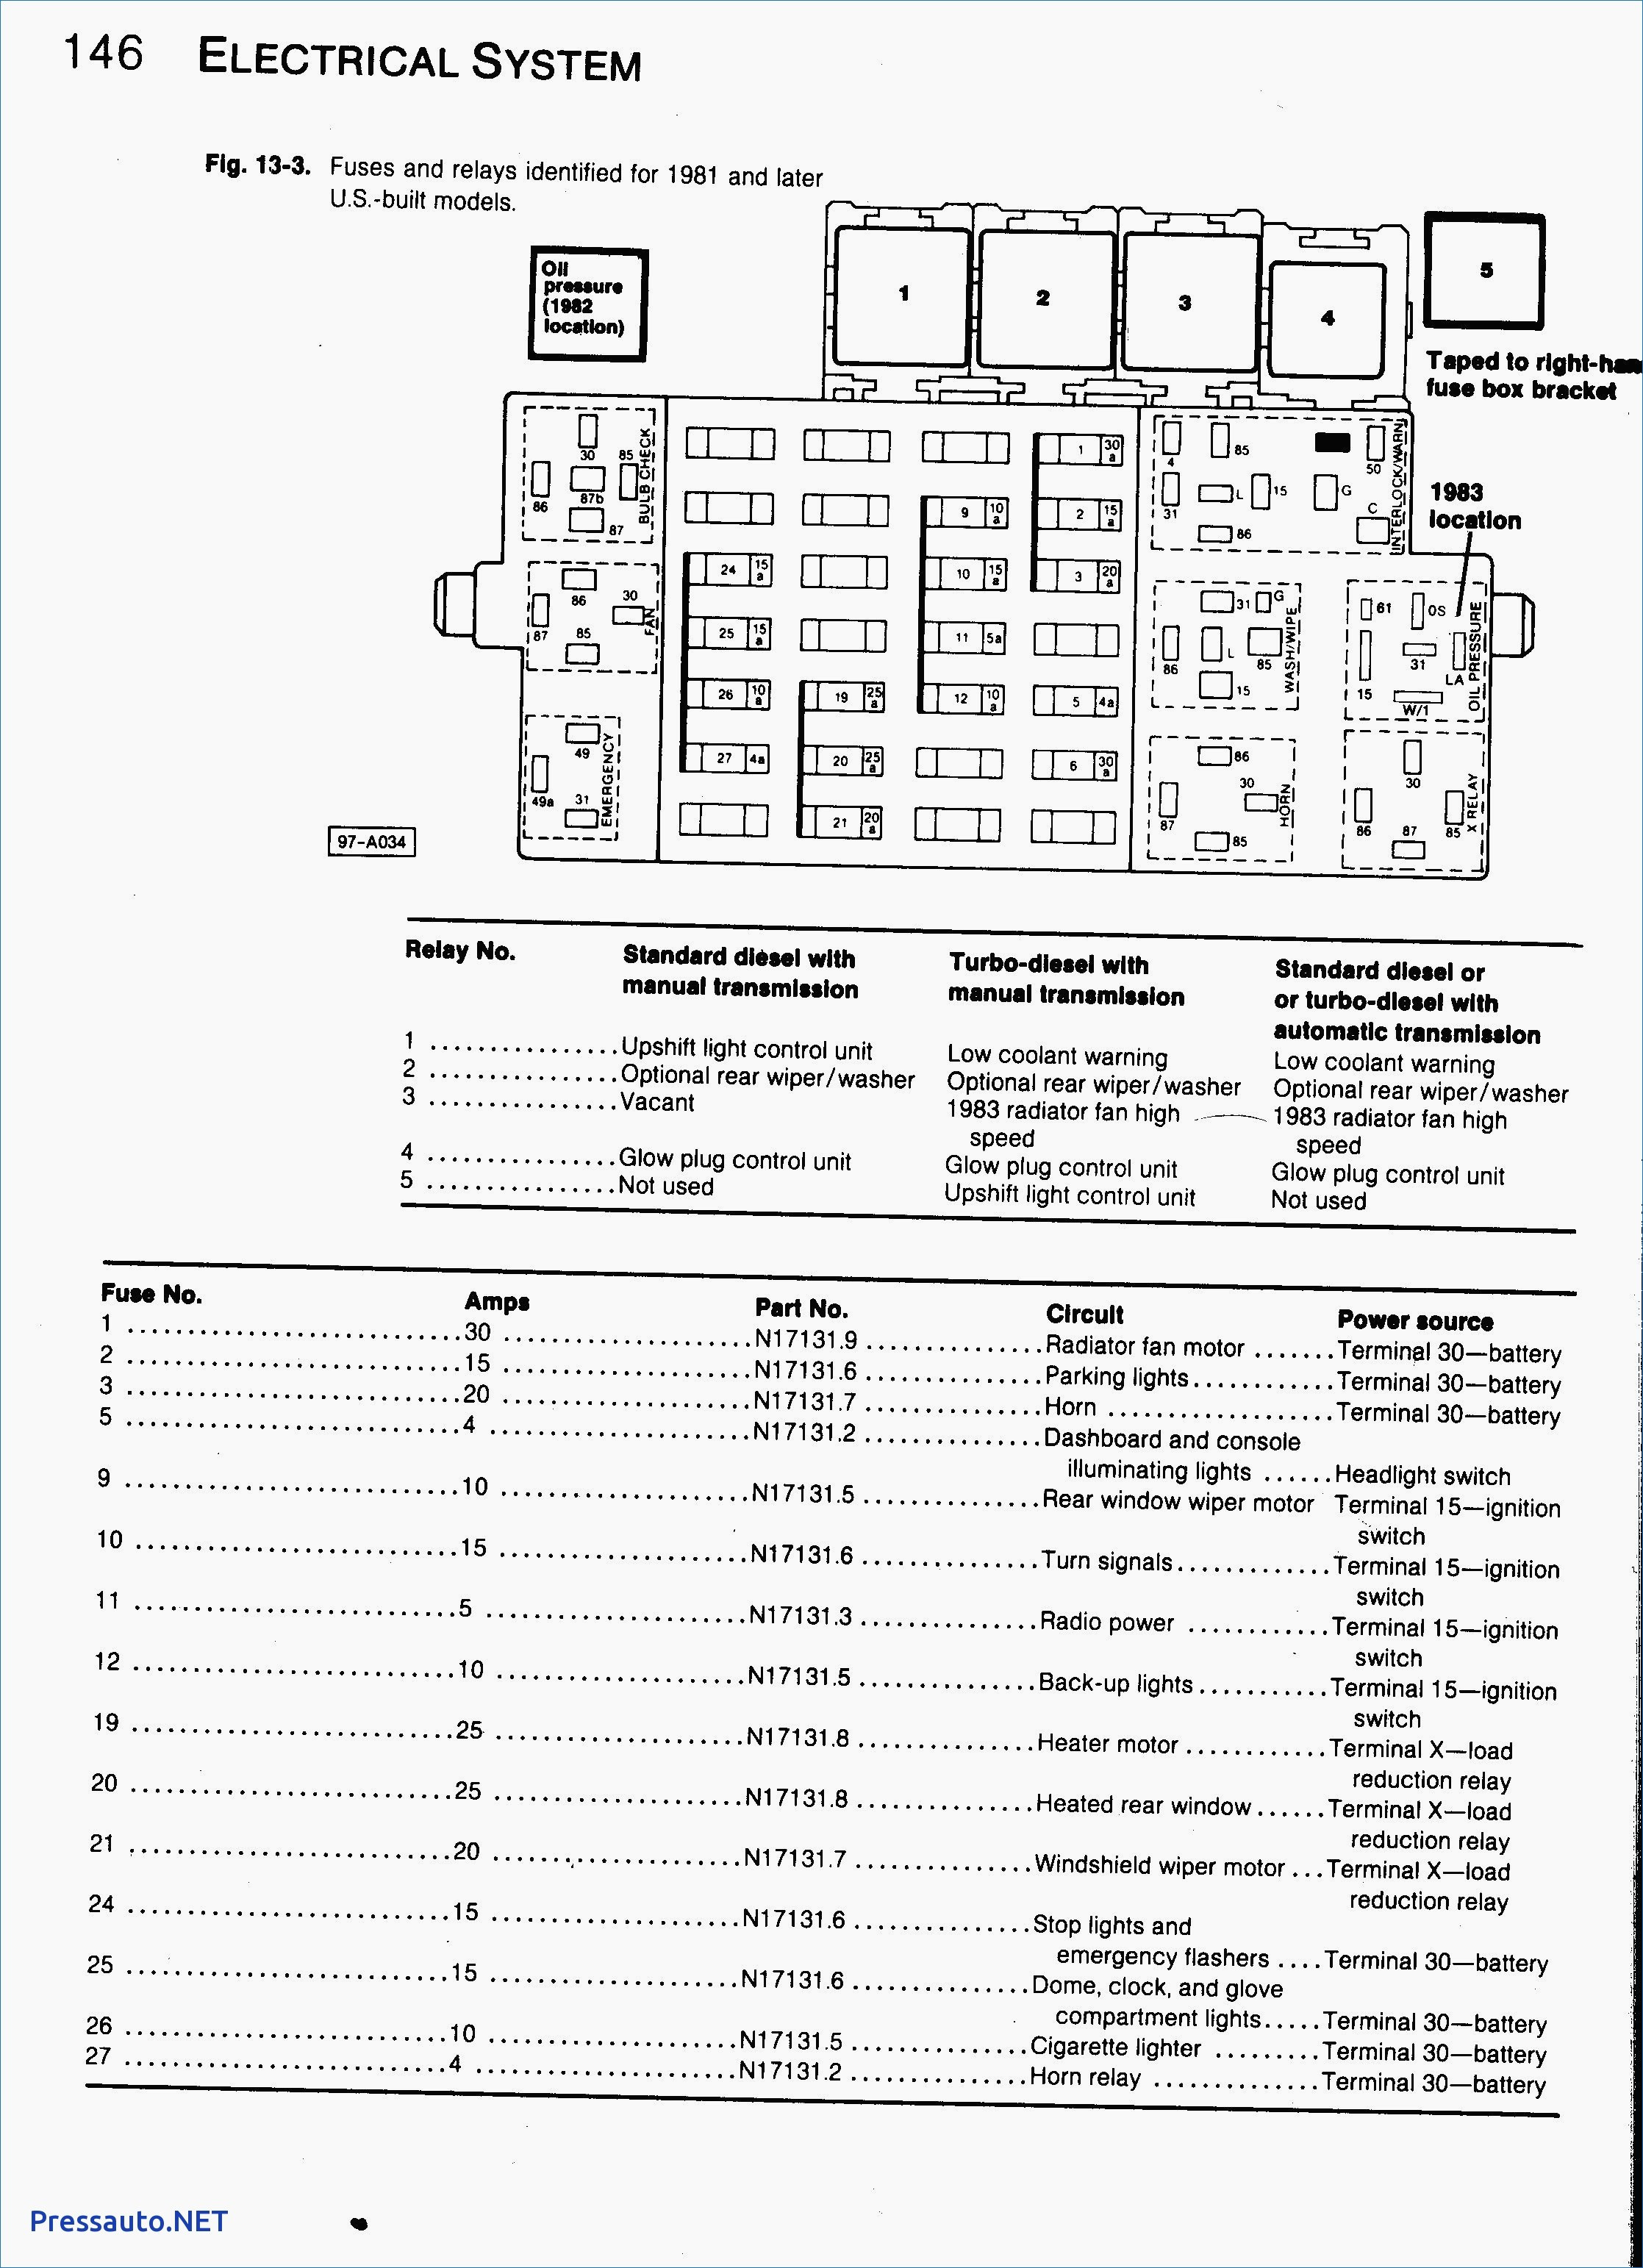 fuse box hummer h3 | attachm wiring diagrams - attachm.ferbud.eu  wiring diagram library - ferbud.eu